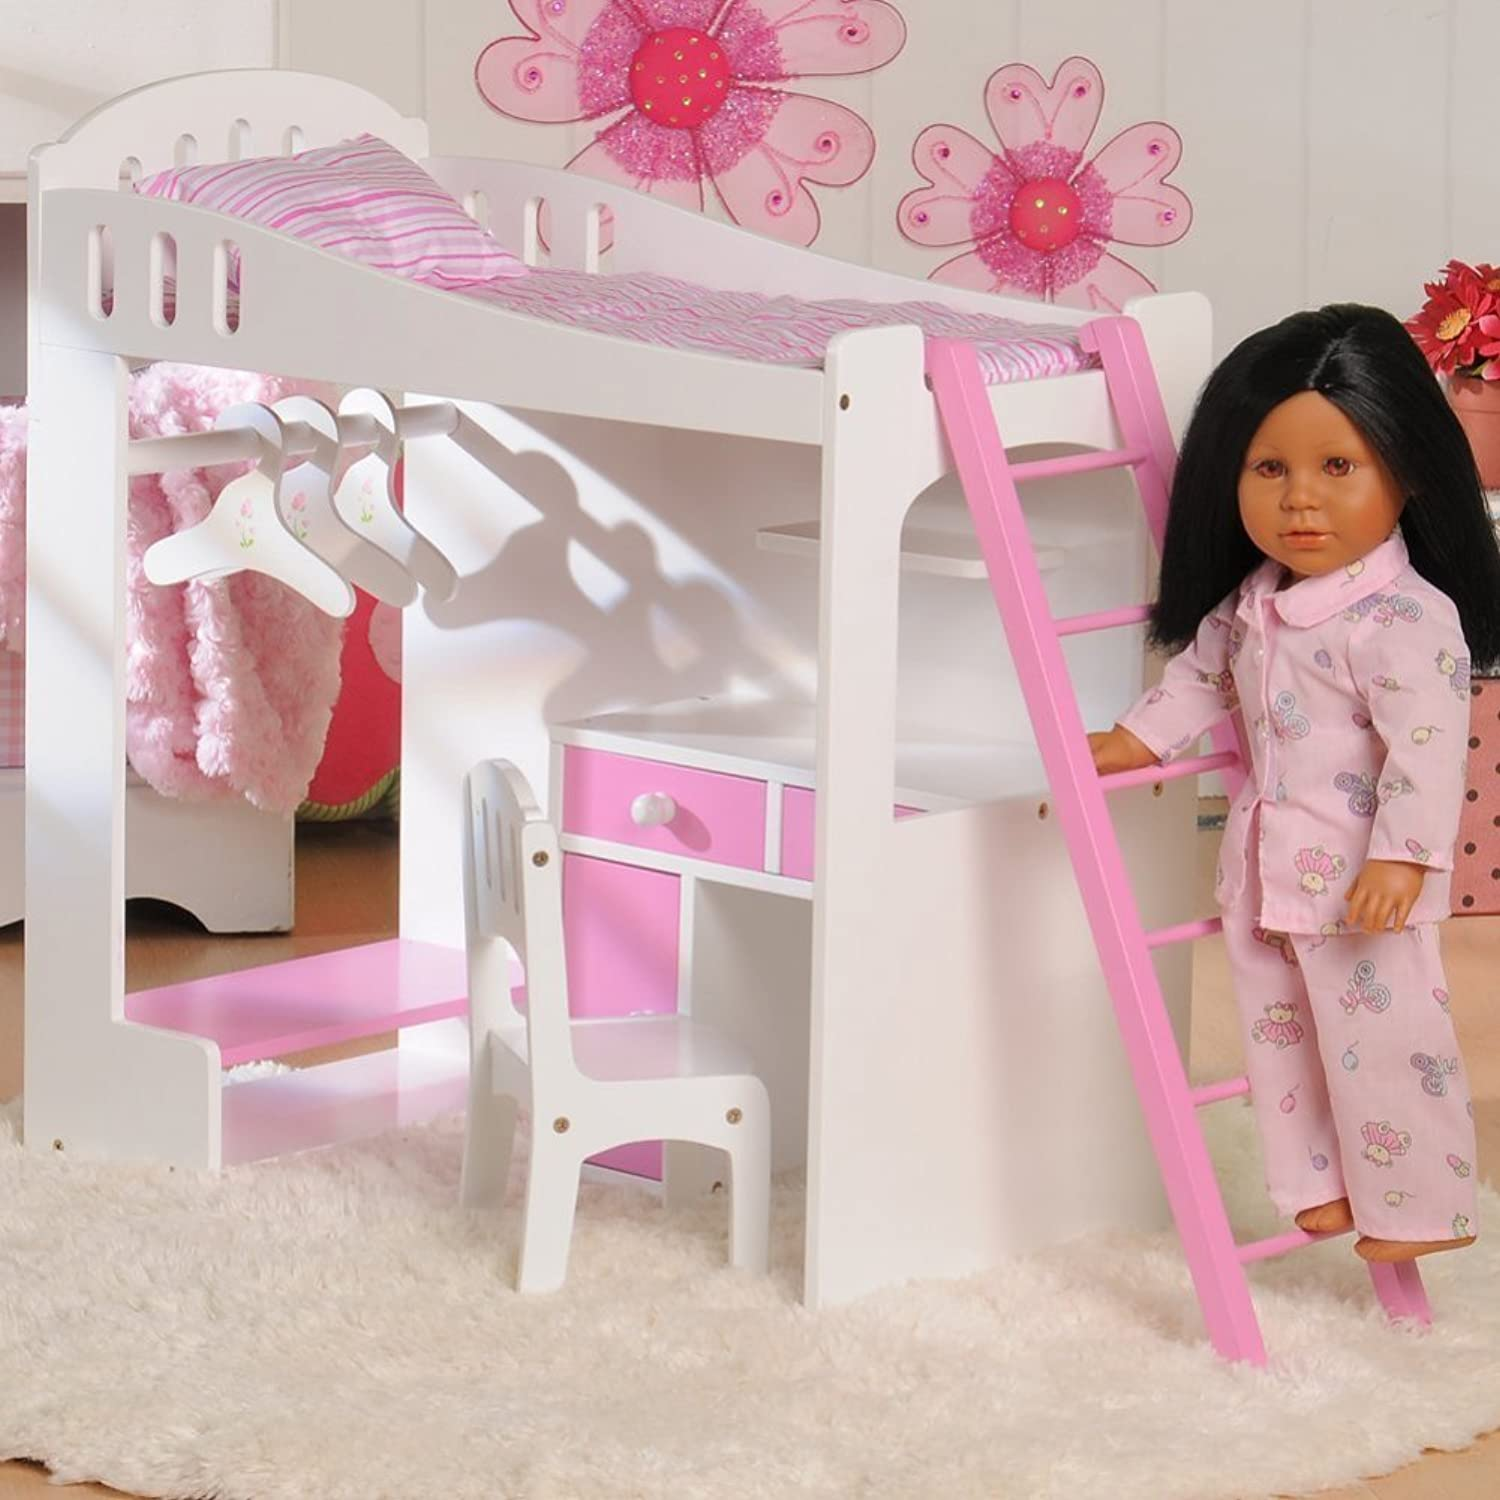 Constructive Playthings Today's Girl Doll Loft Bed 8-Piece Playset - For 18 Dolls and Accessories - Ages 4+ by Constructive Playthings